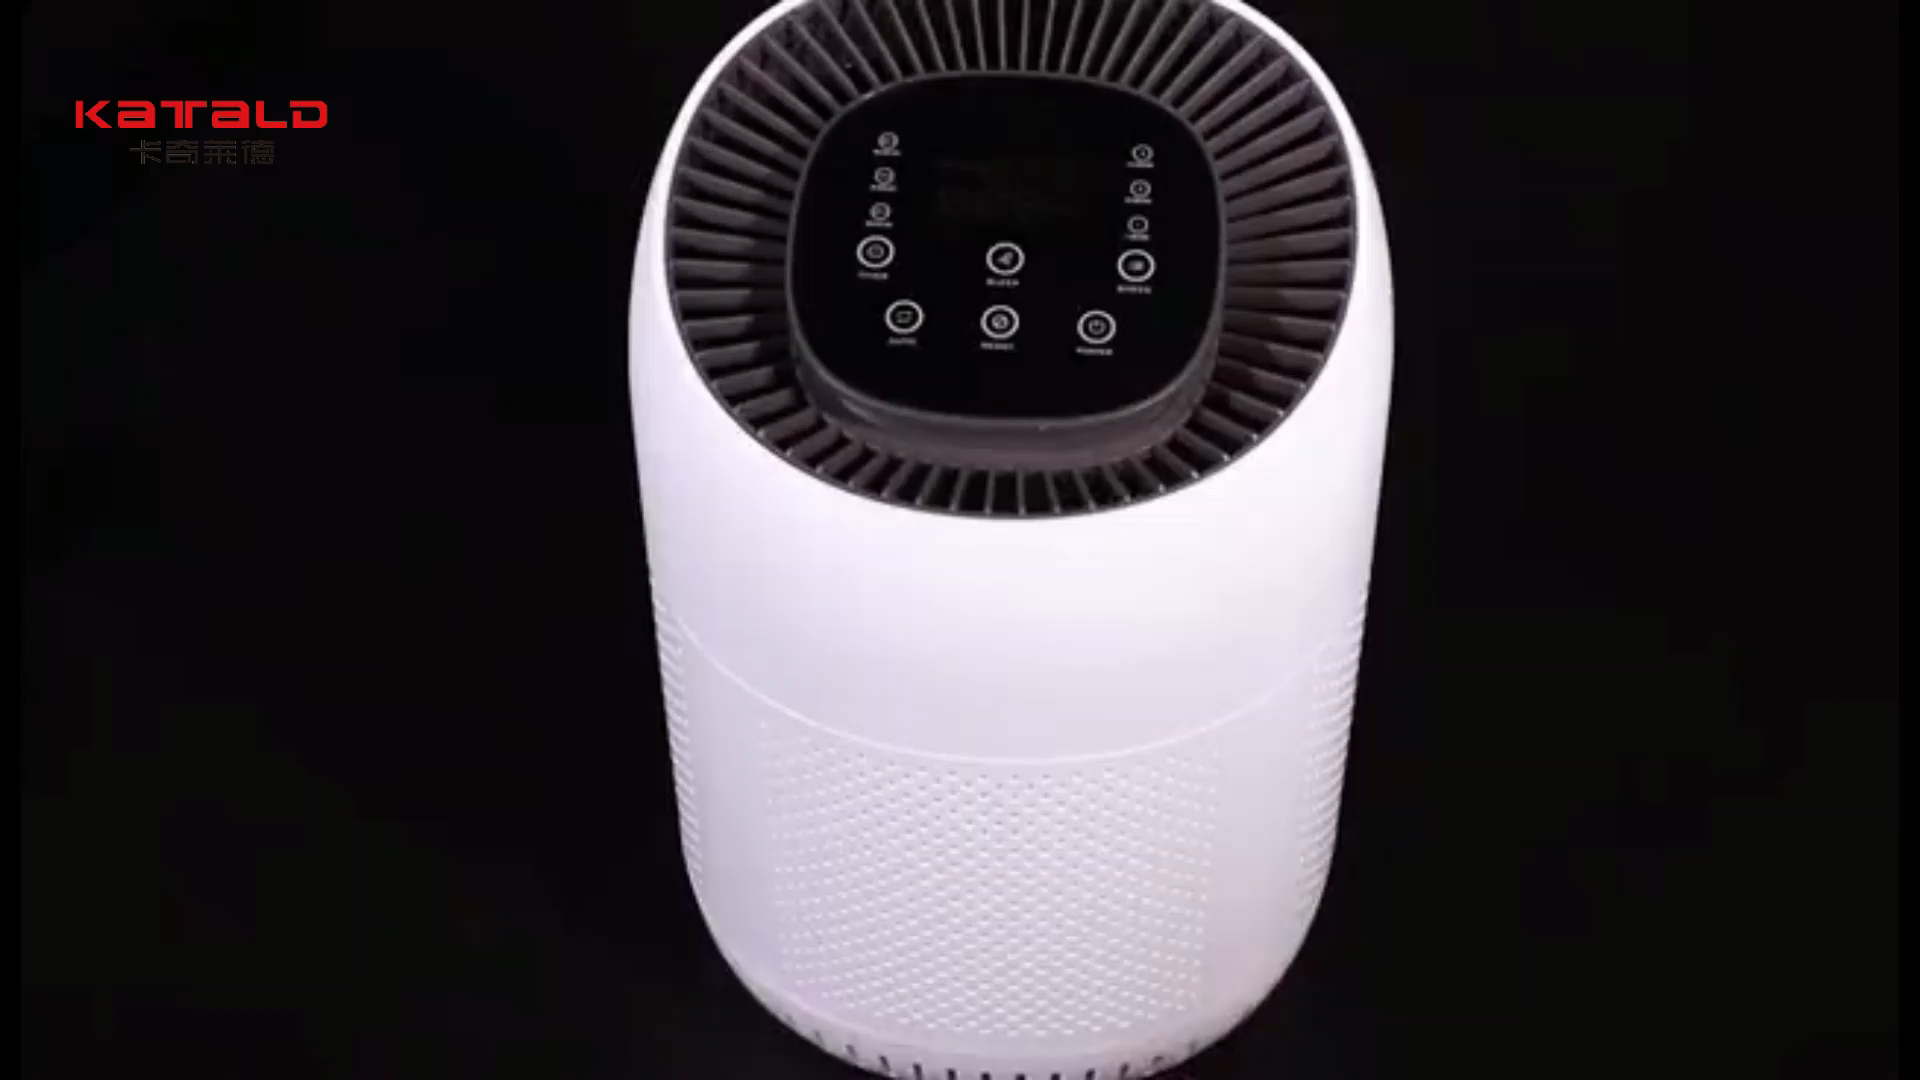 Air Cleaner with 3 Stage Filtration with True HEPA Filter, Allergen Remover, Dust Smoke Odor Home Air Purifier Portable